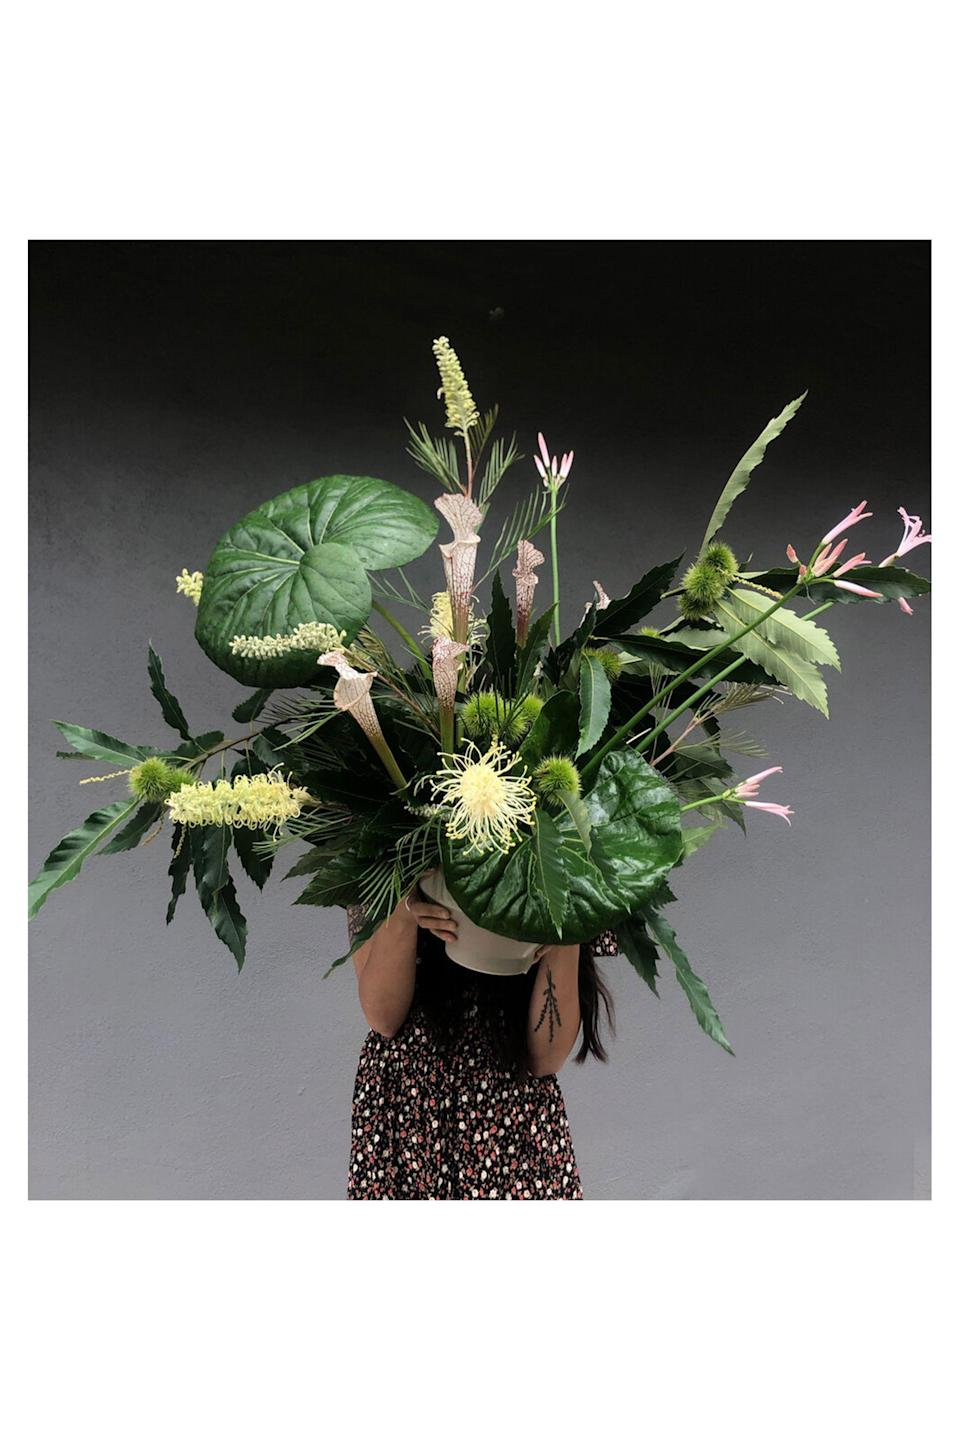 """<p><strong>Isa Isa Floral</strong></p><p>isafloral.com</p><p><strong>$165.00</strong></p><p><a href=""""http://www.isafloral.com/shop/the-sculptural-green-arrangement"""" rel=""""nofollow noopener"""" target=""""_blank"""" data-ylk=""""slk:Shop Now"""" class=""""link rapid-noclick-resp"""">Shop Now</a></p><p>Founded by Sophia Moreno-Bunge, <a href=""""http://www.isafloral.com/"""" rel=""""nofollow noopener"""" target=""""_blank"""" data-ylk=""""slk:Isa Isa Floral"""" class=""""link rapid-noclick-resp"""">Isa Isa Floral</a> is a design studio based in Los Angeles named after her grandmothers. Her inventive arrangements emphasize seasonal, often local and foraged flowers, branches, pods, and fruits. While her fresh floral arrangements stay local to LA, she does ship dry floral arrangements anywhere in the United States. You might recognize her florals seen at the Goop store.</p>"""